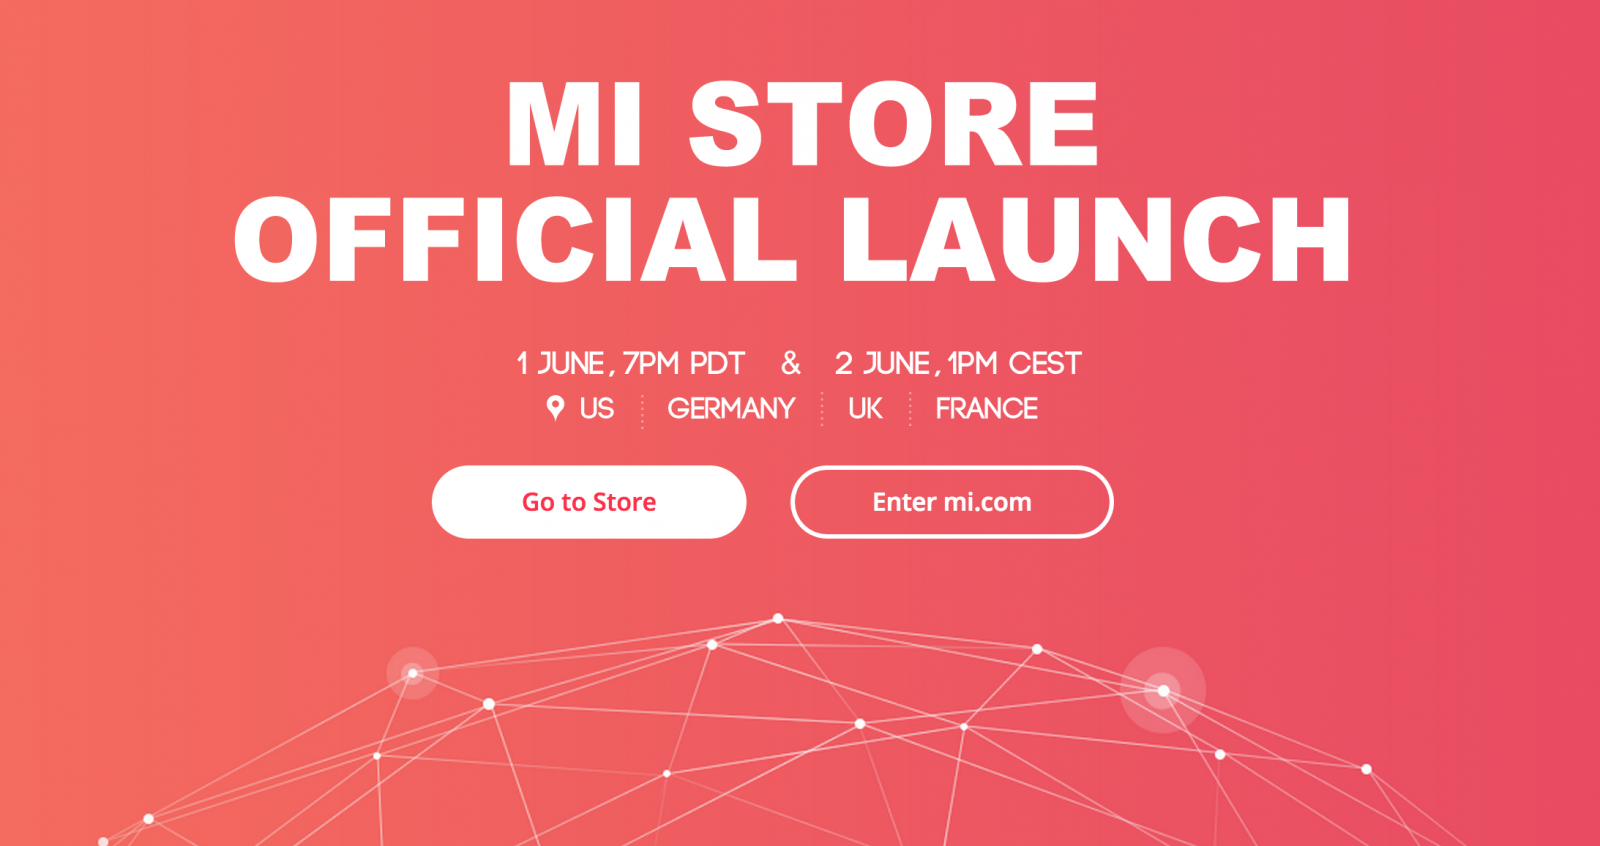 Xiaomi US UK stores launching